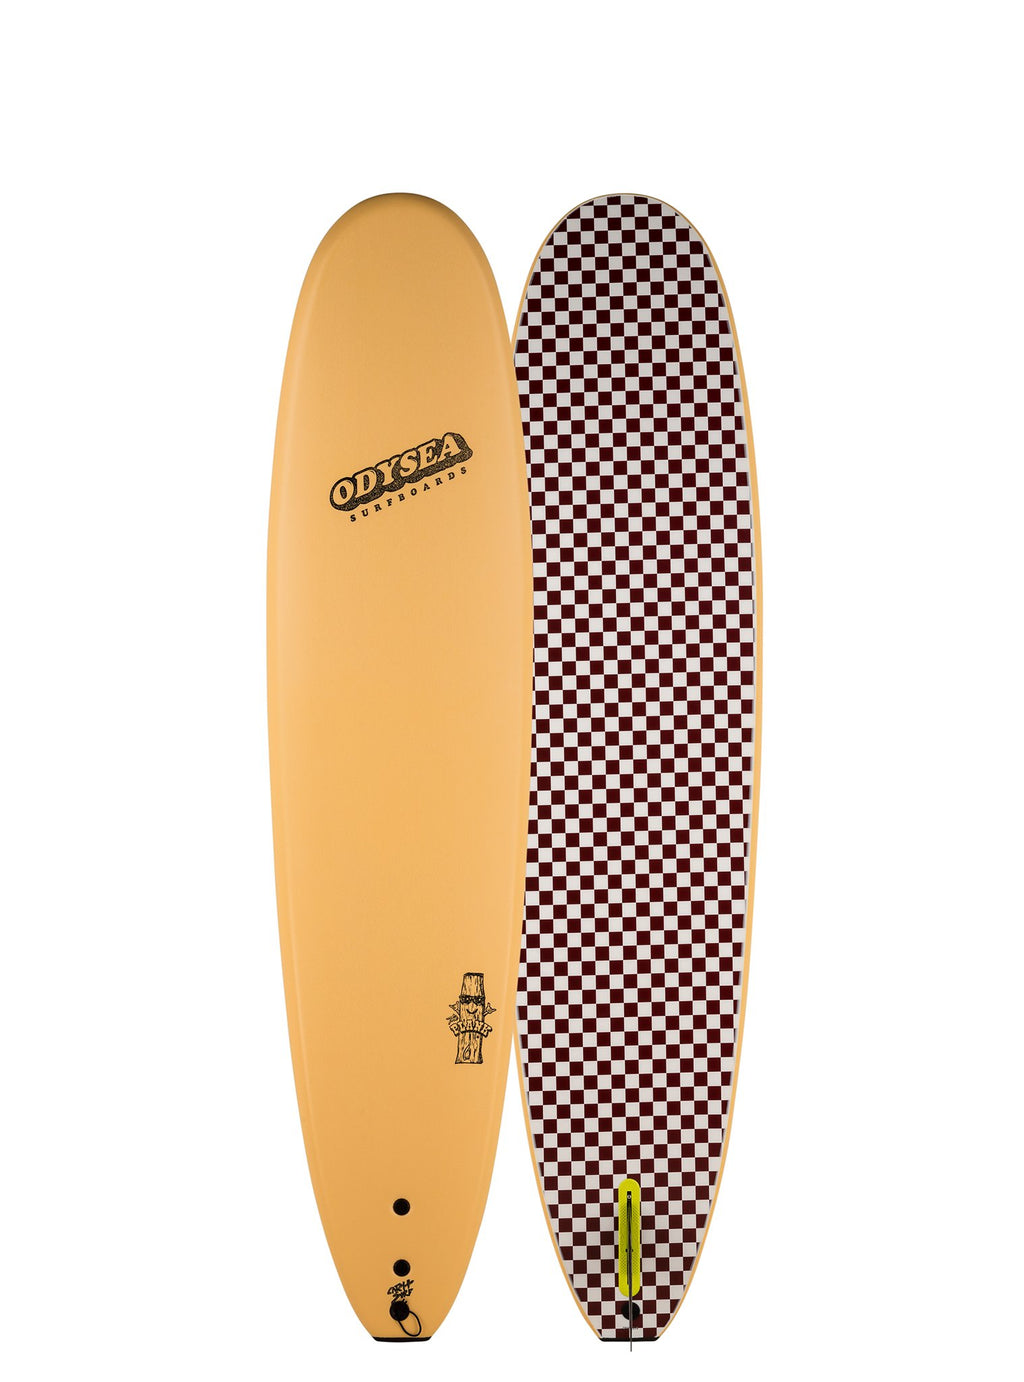 Odysea Plank Single Fin